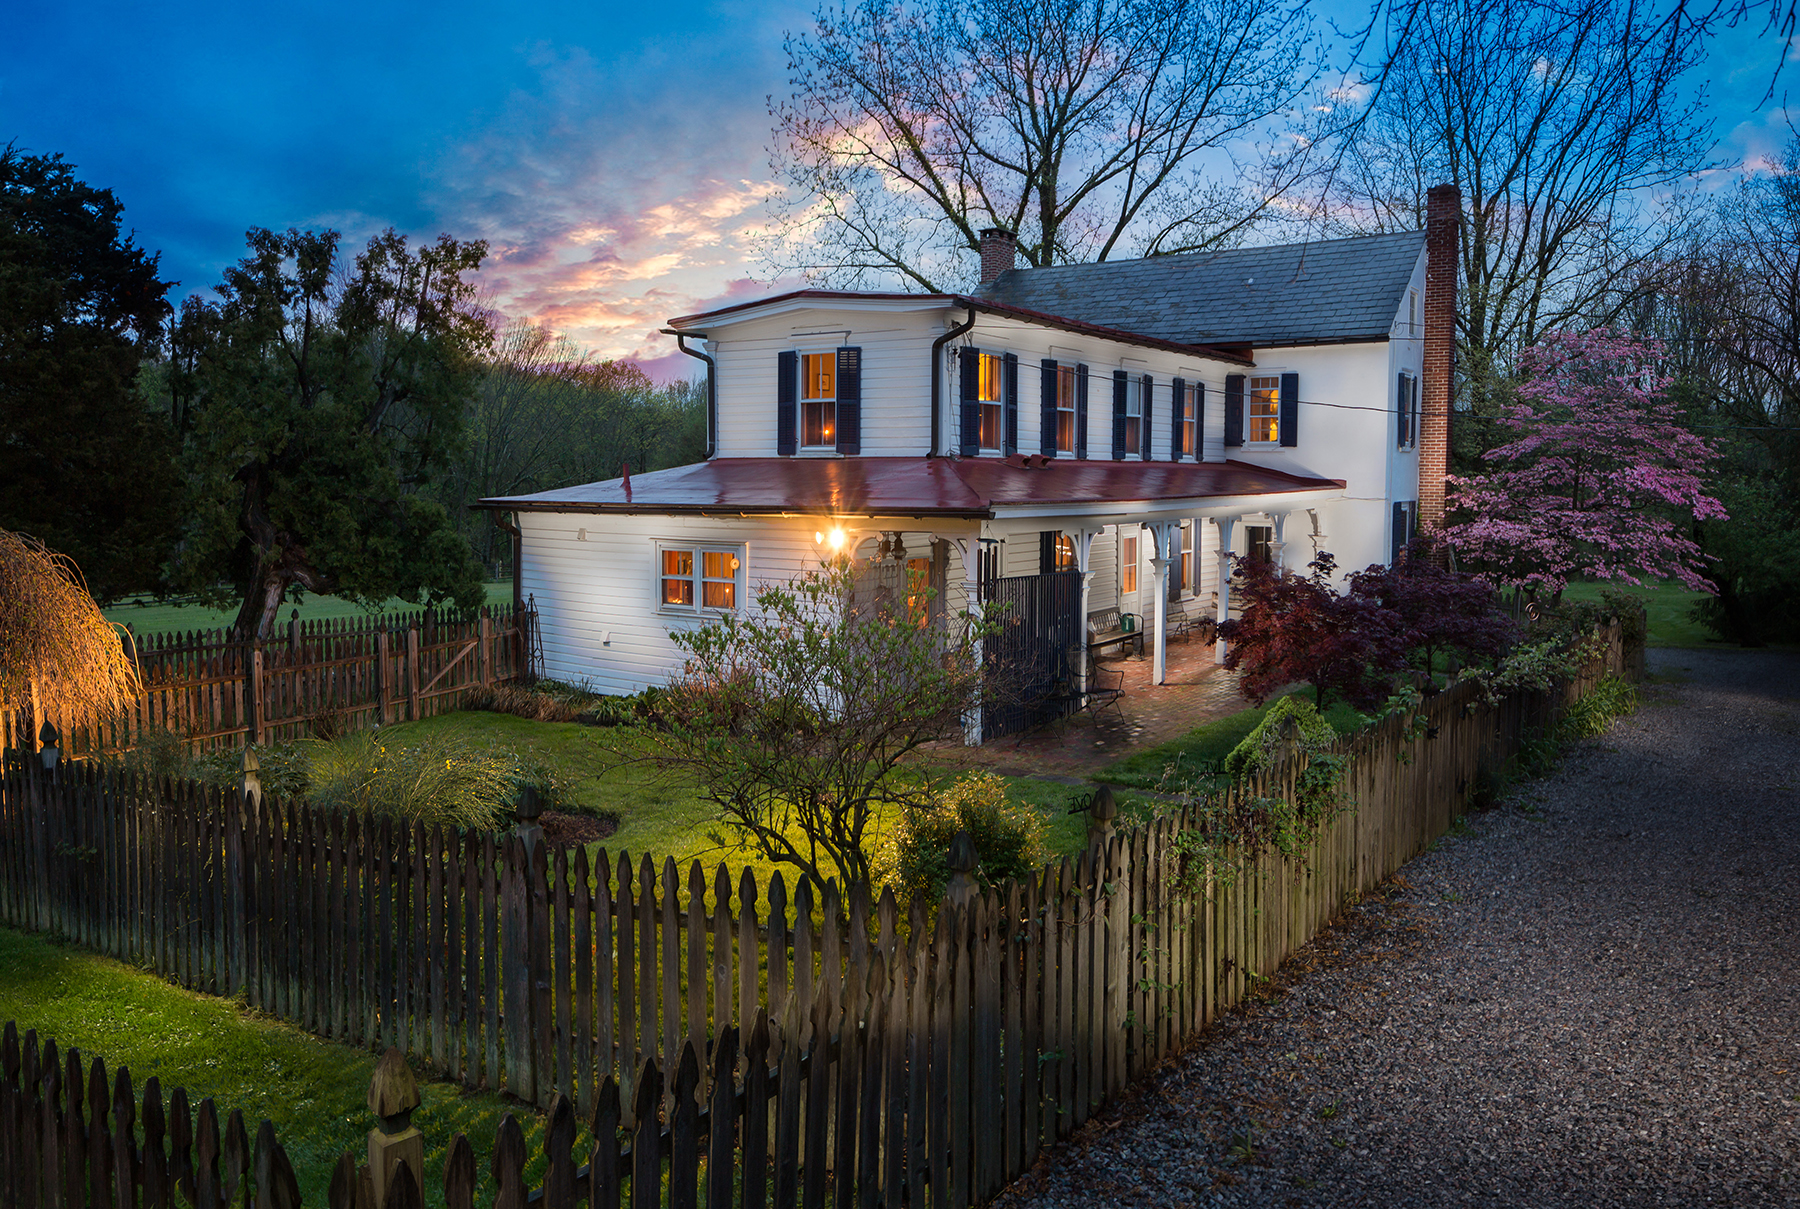 Single Family Home for Sale at Groth Hill Farm 2903 DURHAM RD Doylestown, Pennsylvania, 18902 United States